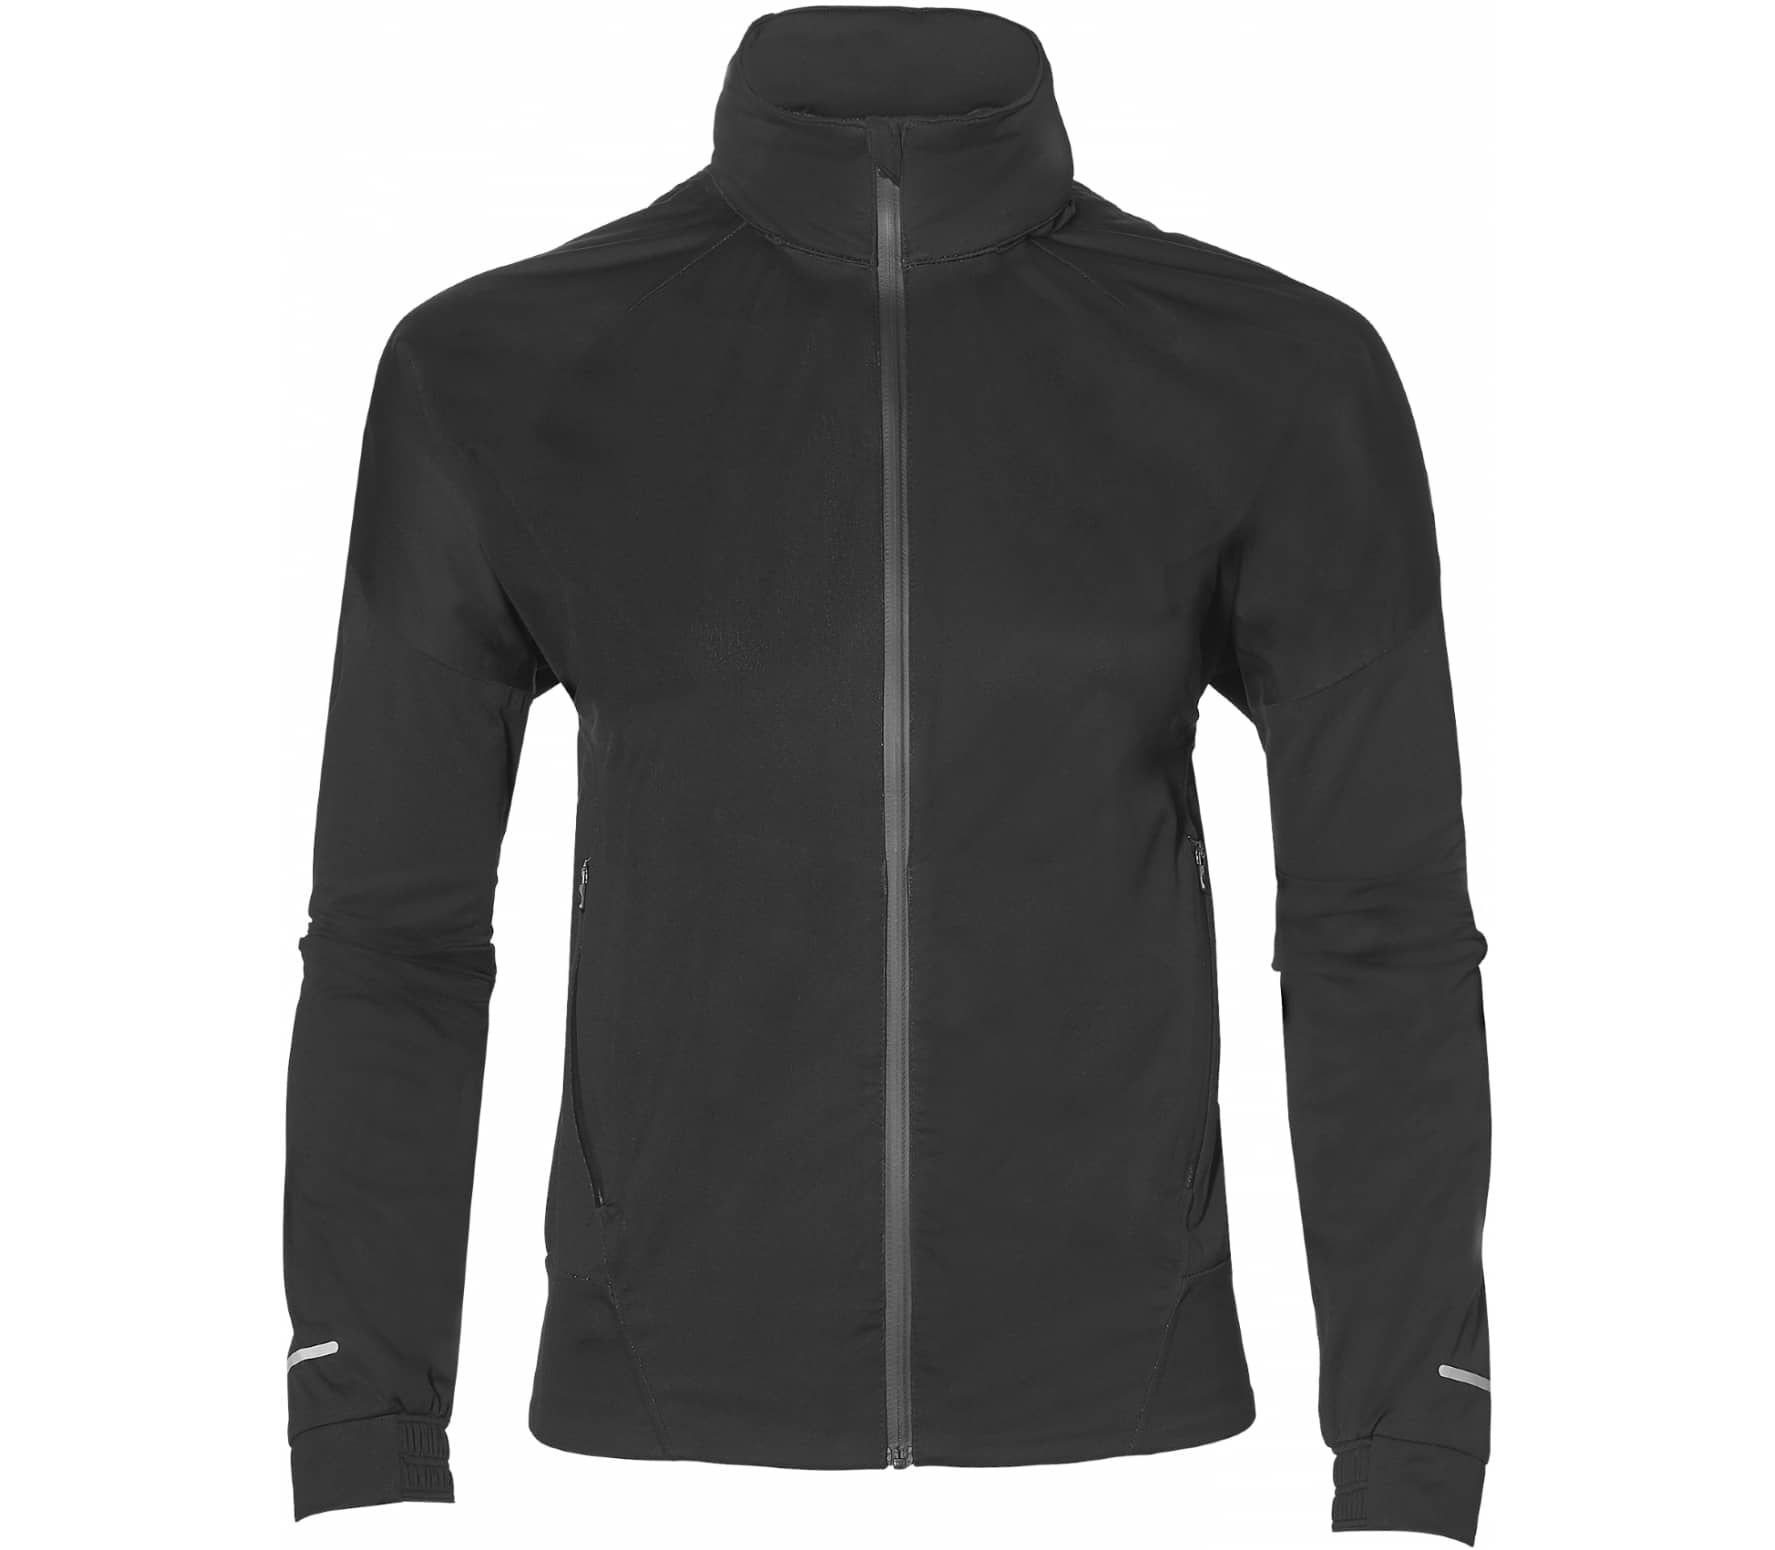 ASICS - Accelerate women's running jacket (black) - XS thumbnail